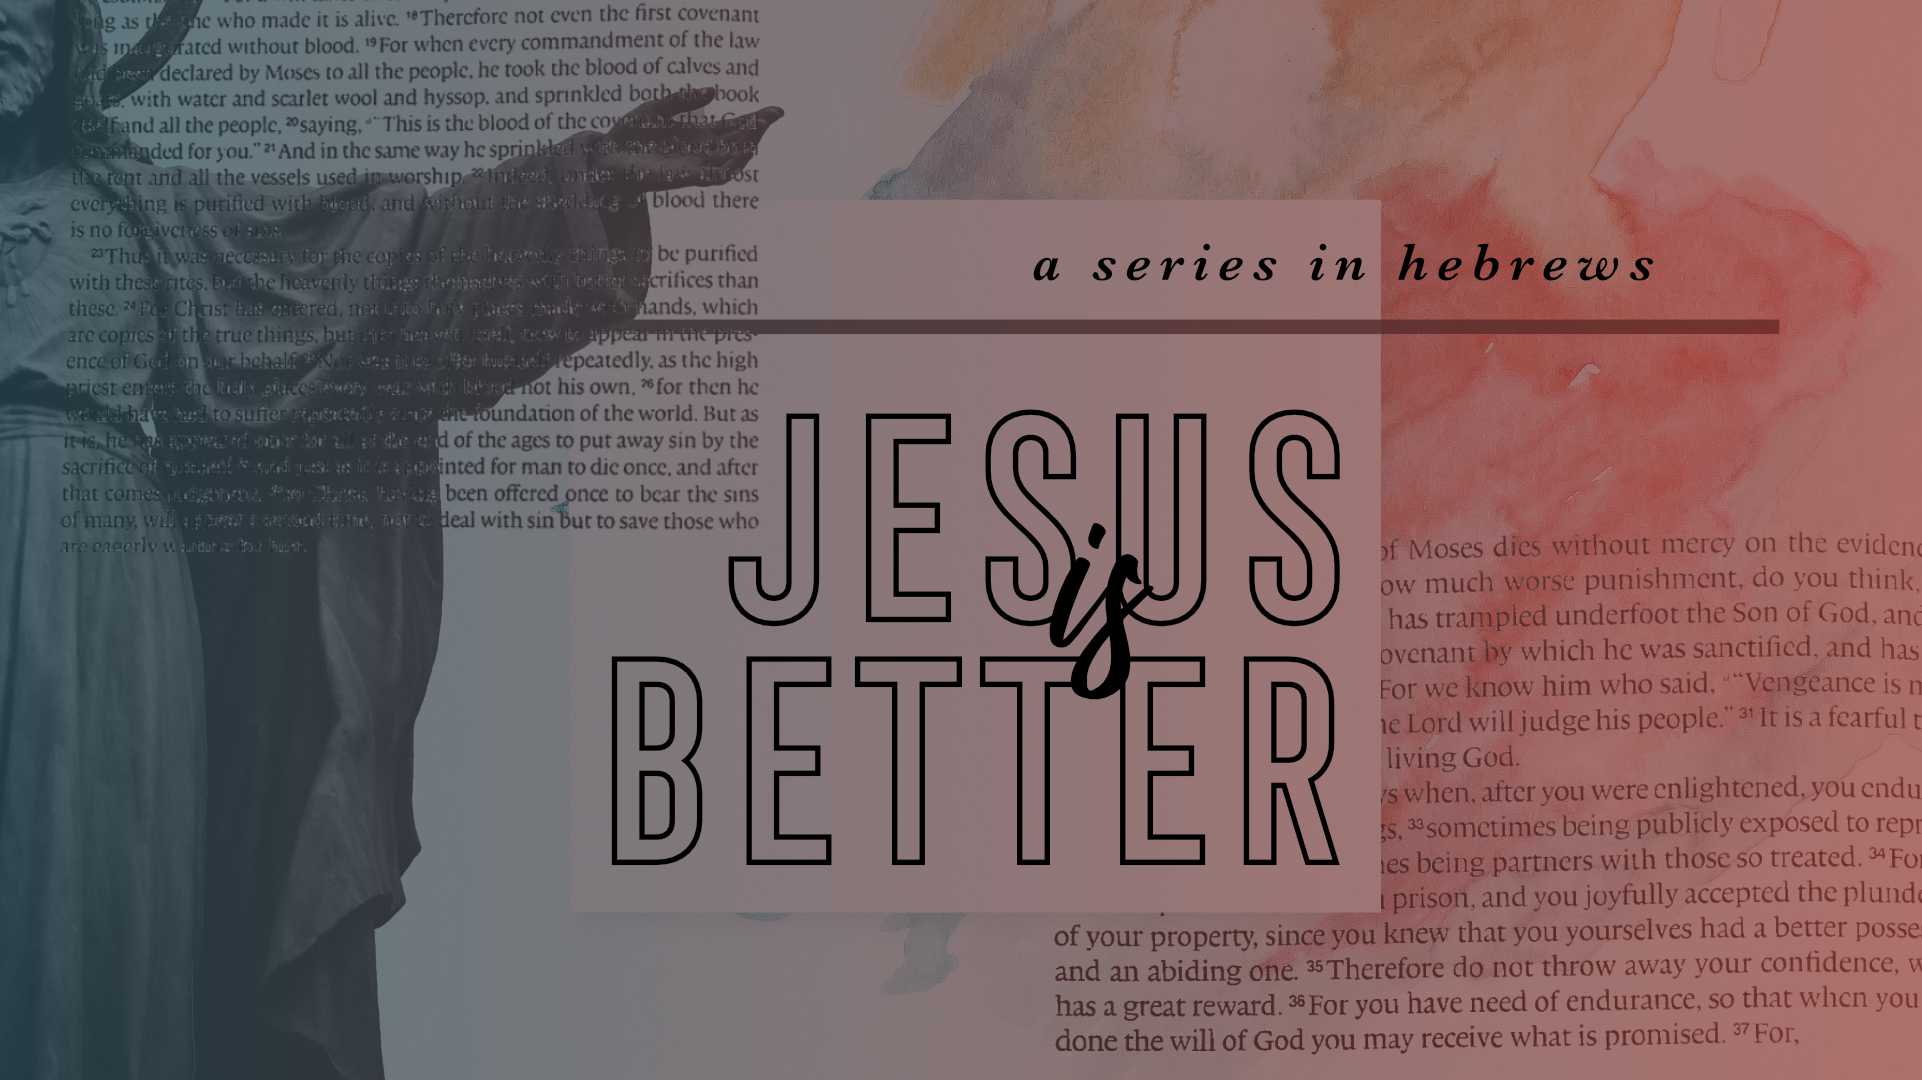 Jesus is Better: A Better Covenant